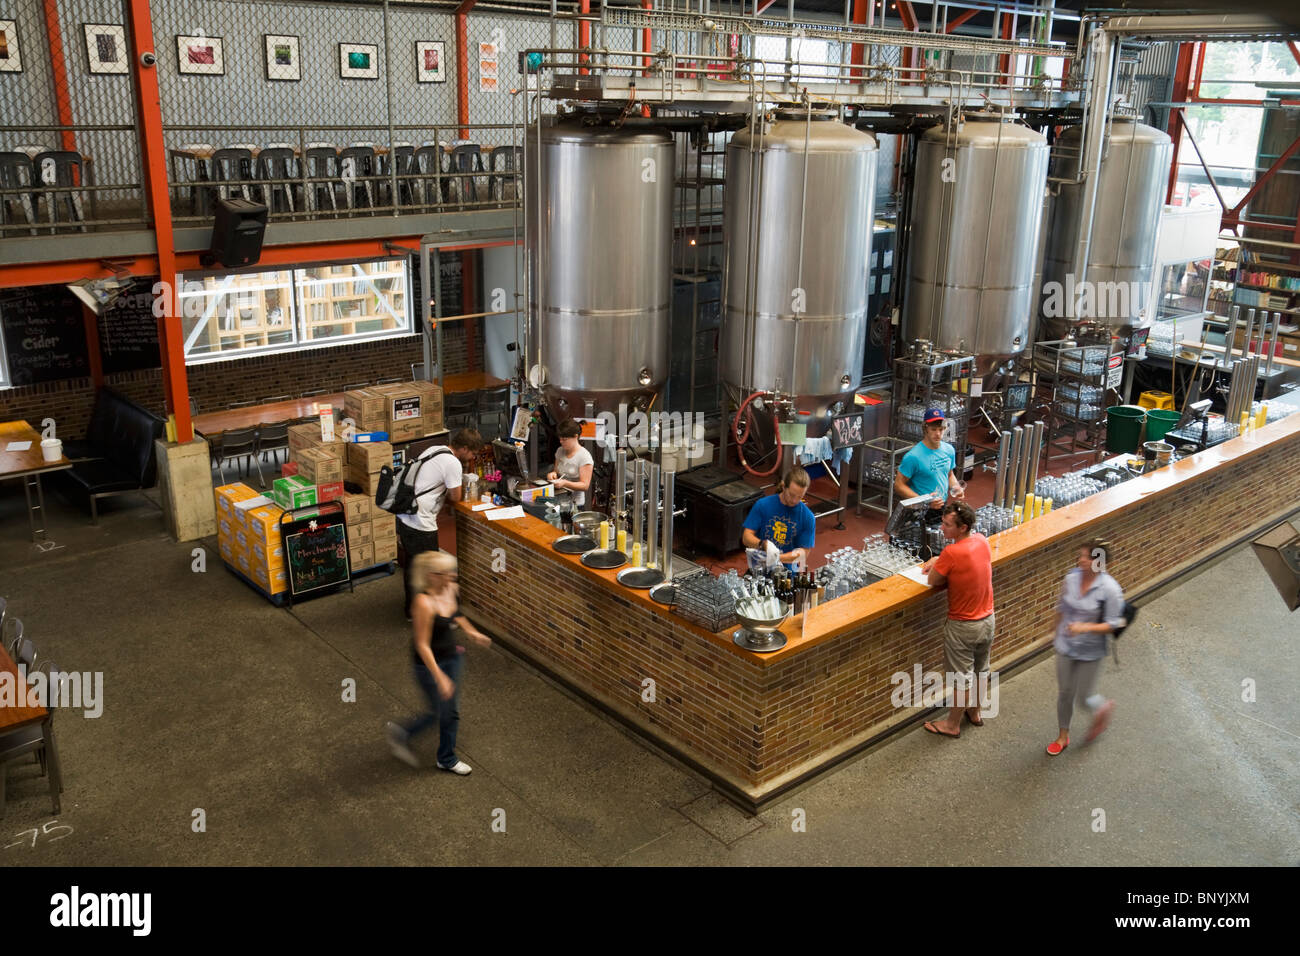 The bar at the Little Creatures Brewery - renowned for its home brewed ales. Fremantle, Western Australia, AUSTRALIA. - Stock Image